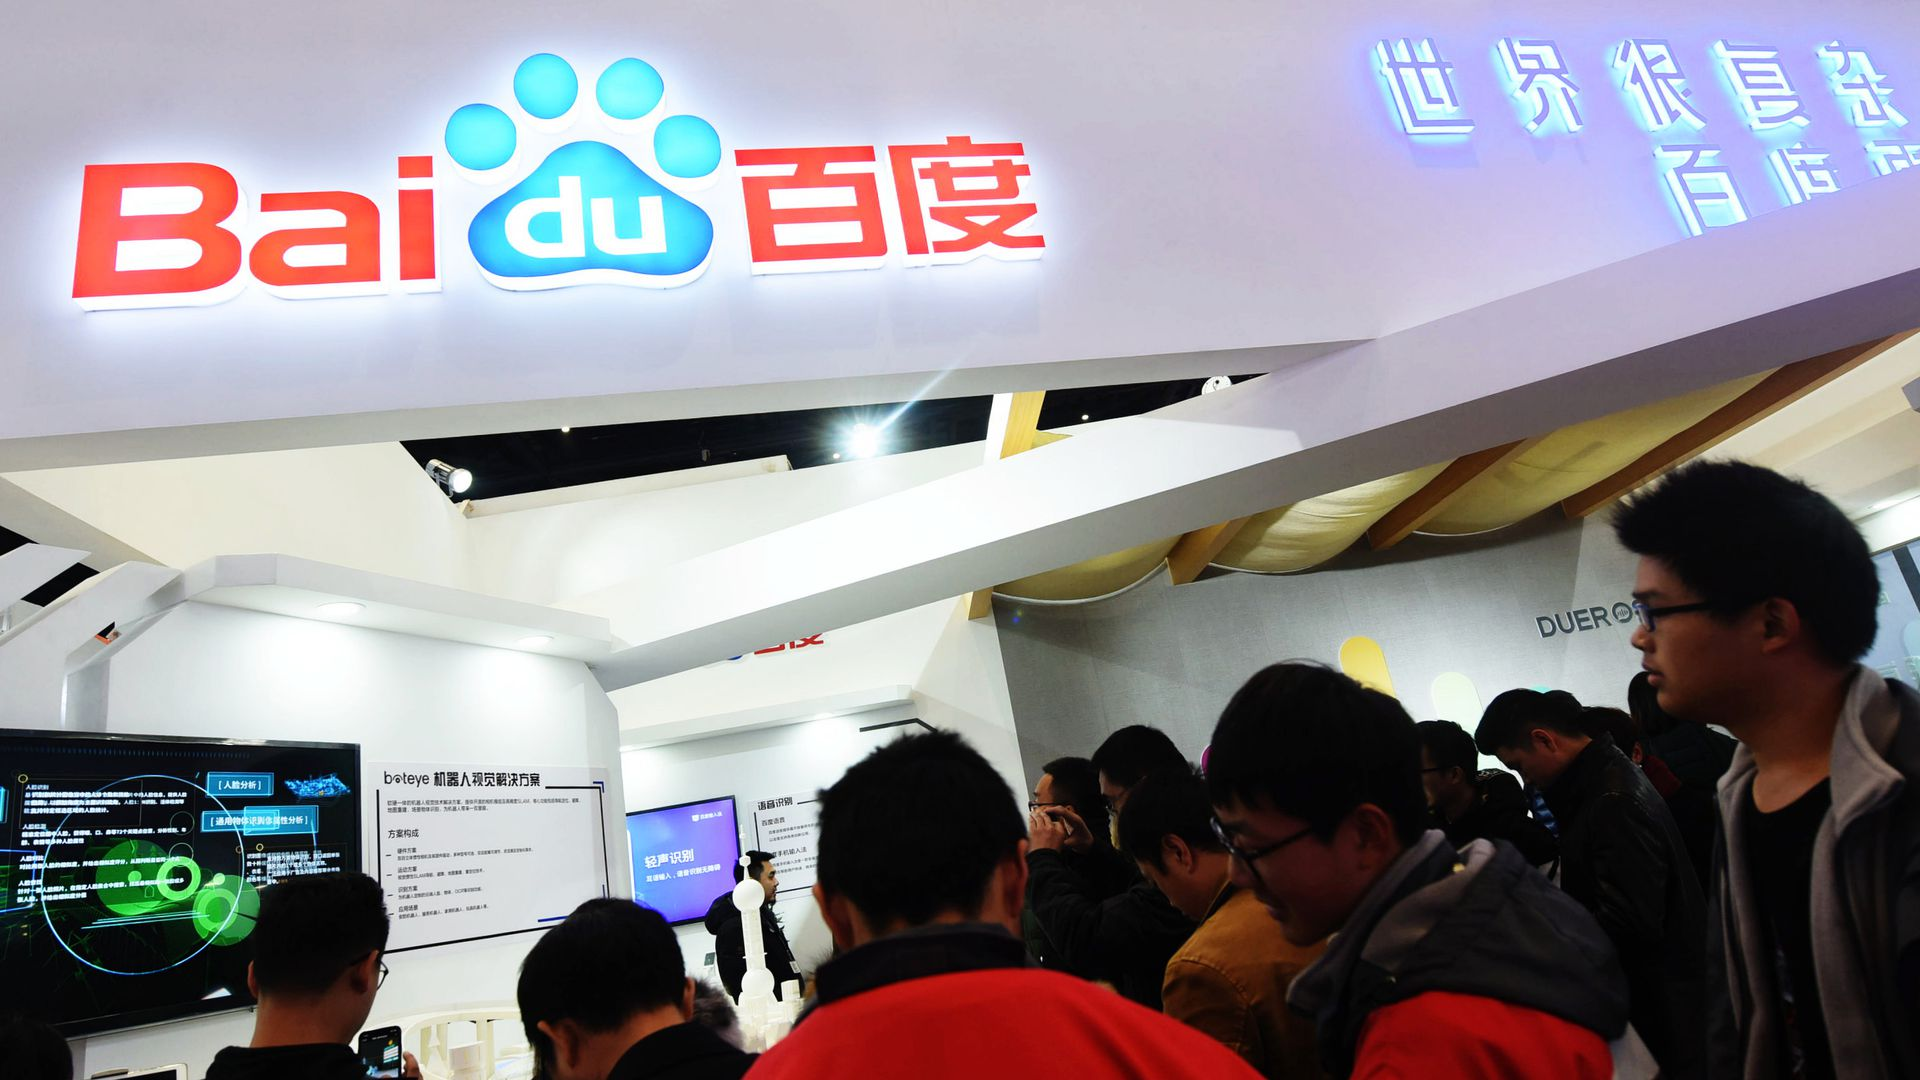 The Baidu booth at a Chinese trade show